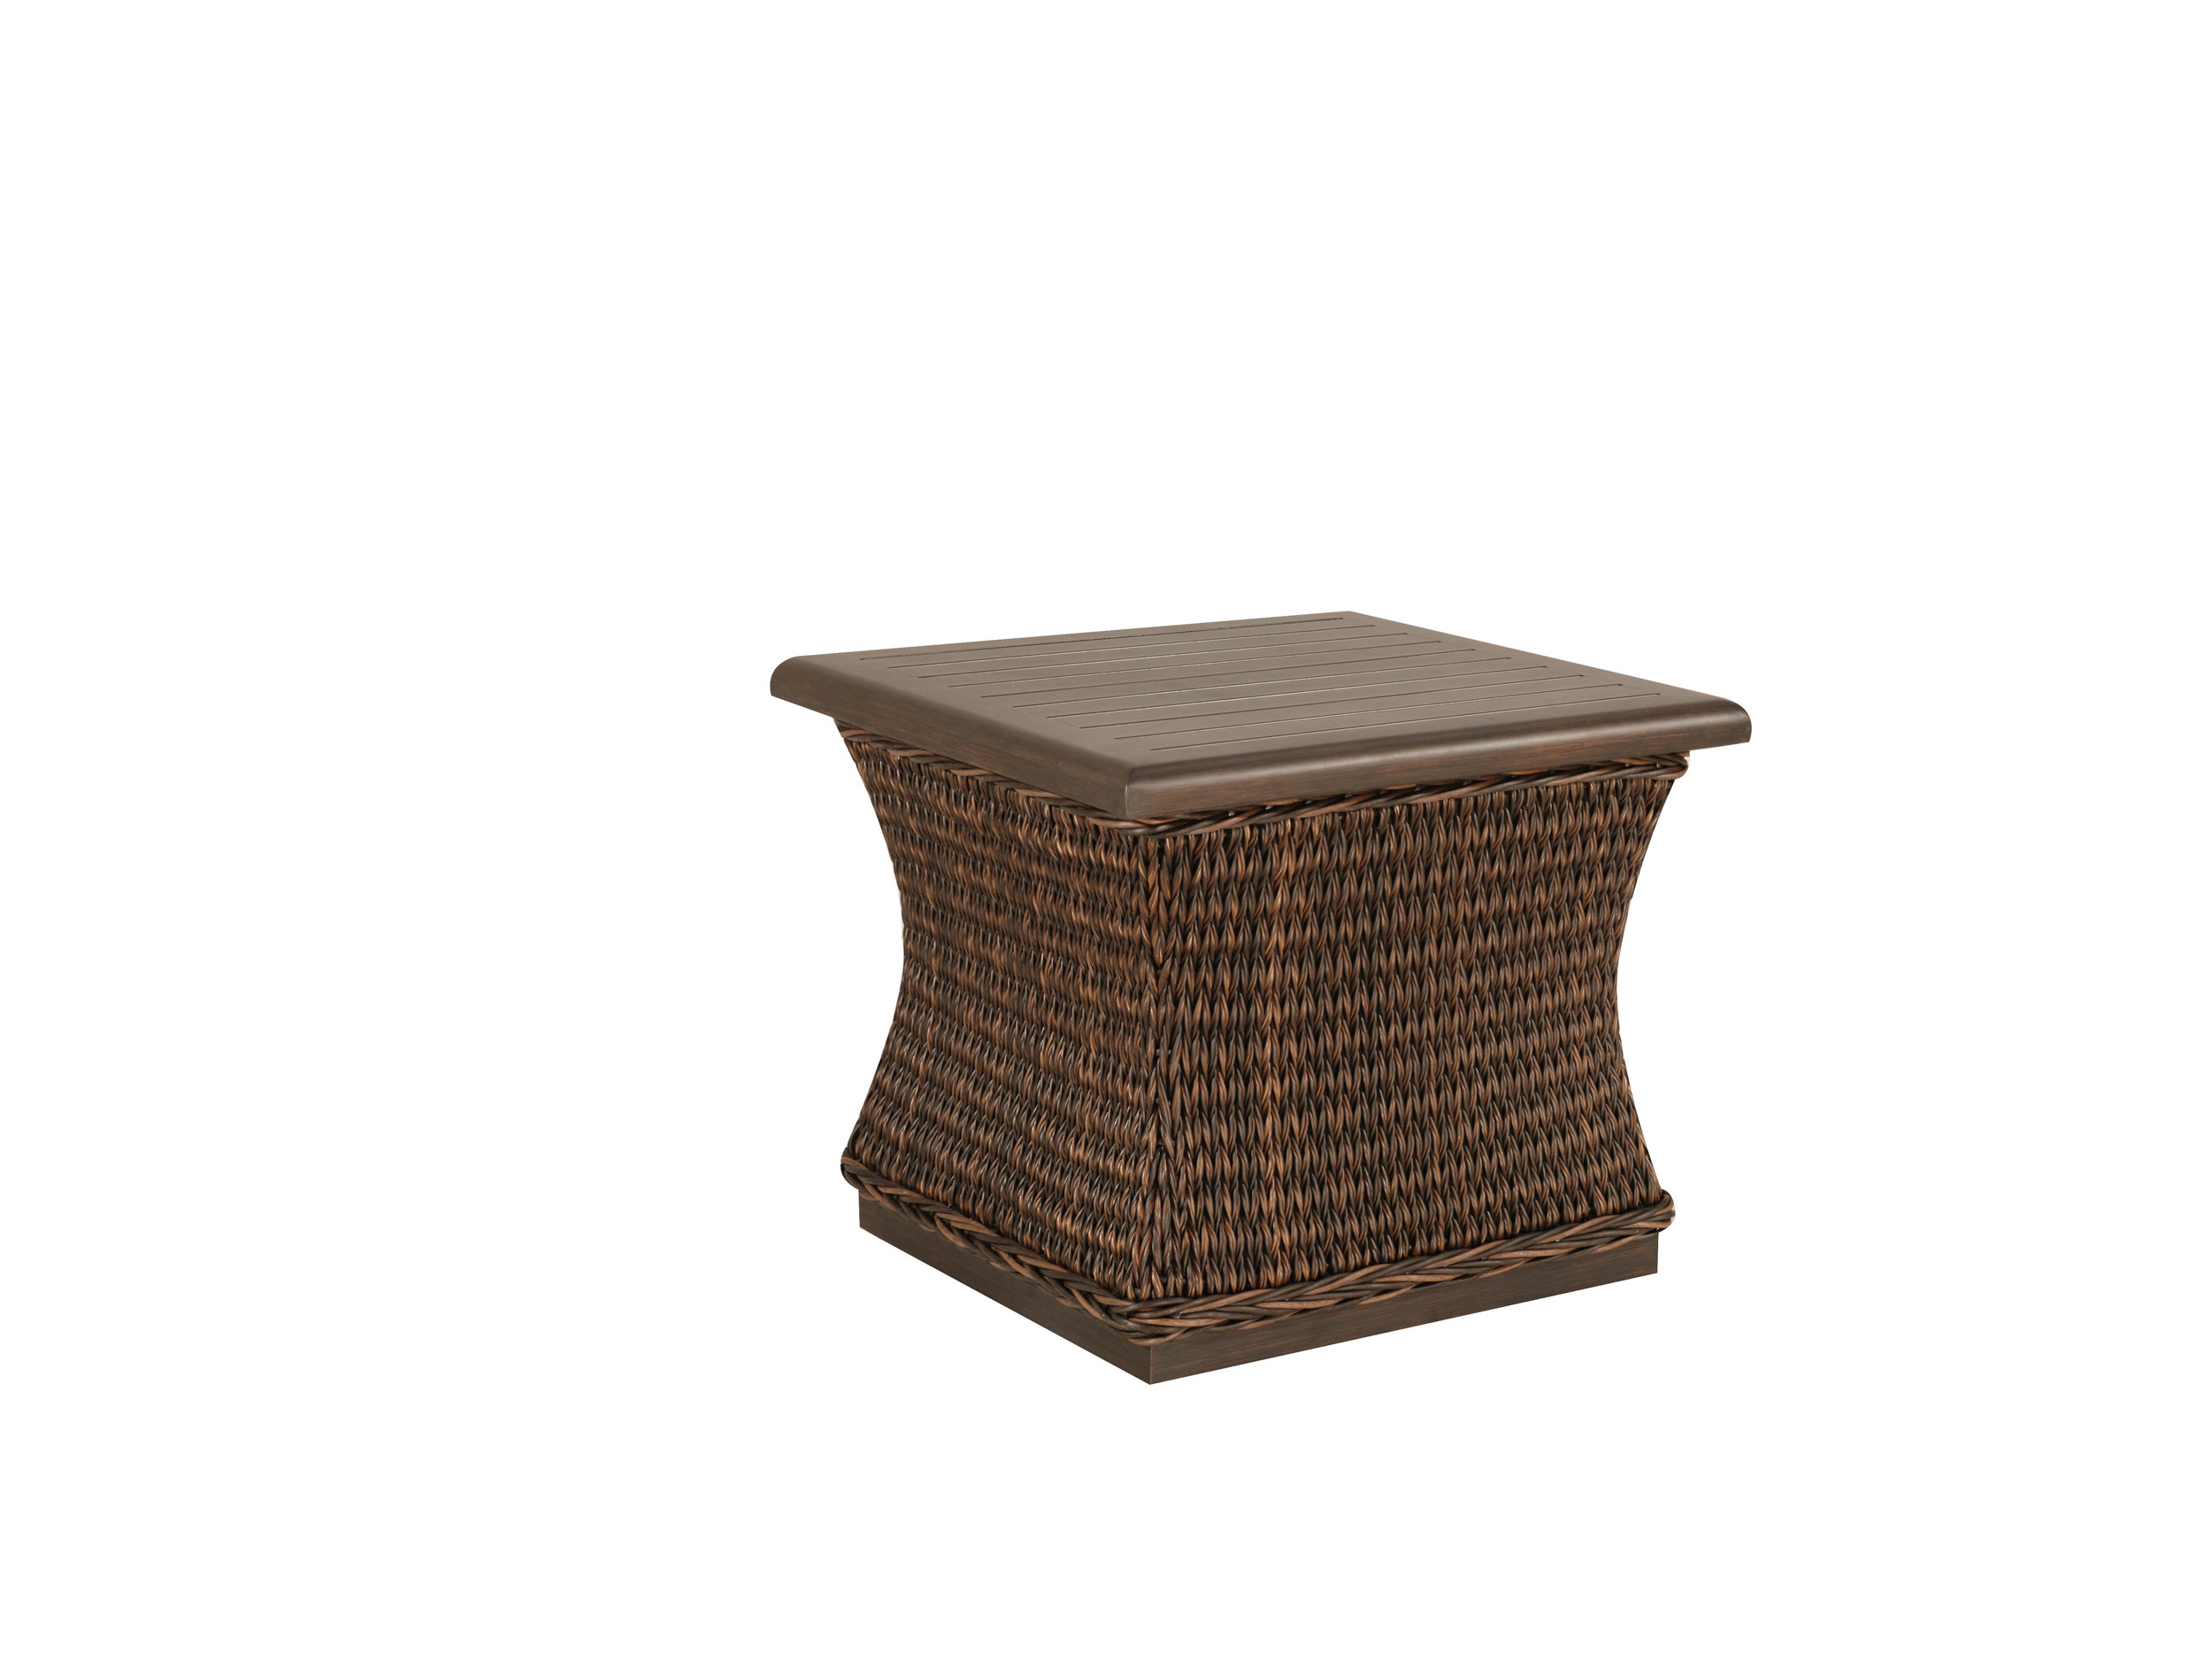 "973022B Monticello Woven End Table Base   (Top : W-23S Farnham Aluminum Faux Wood Top)  19.5"" x 19.5"" x 17.5"""